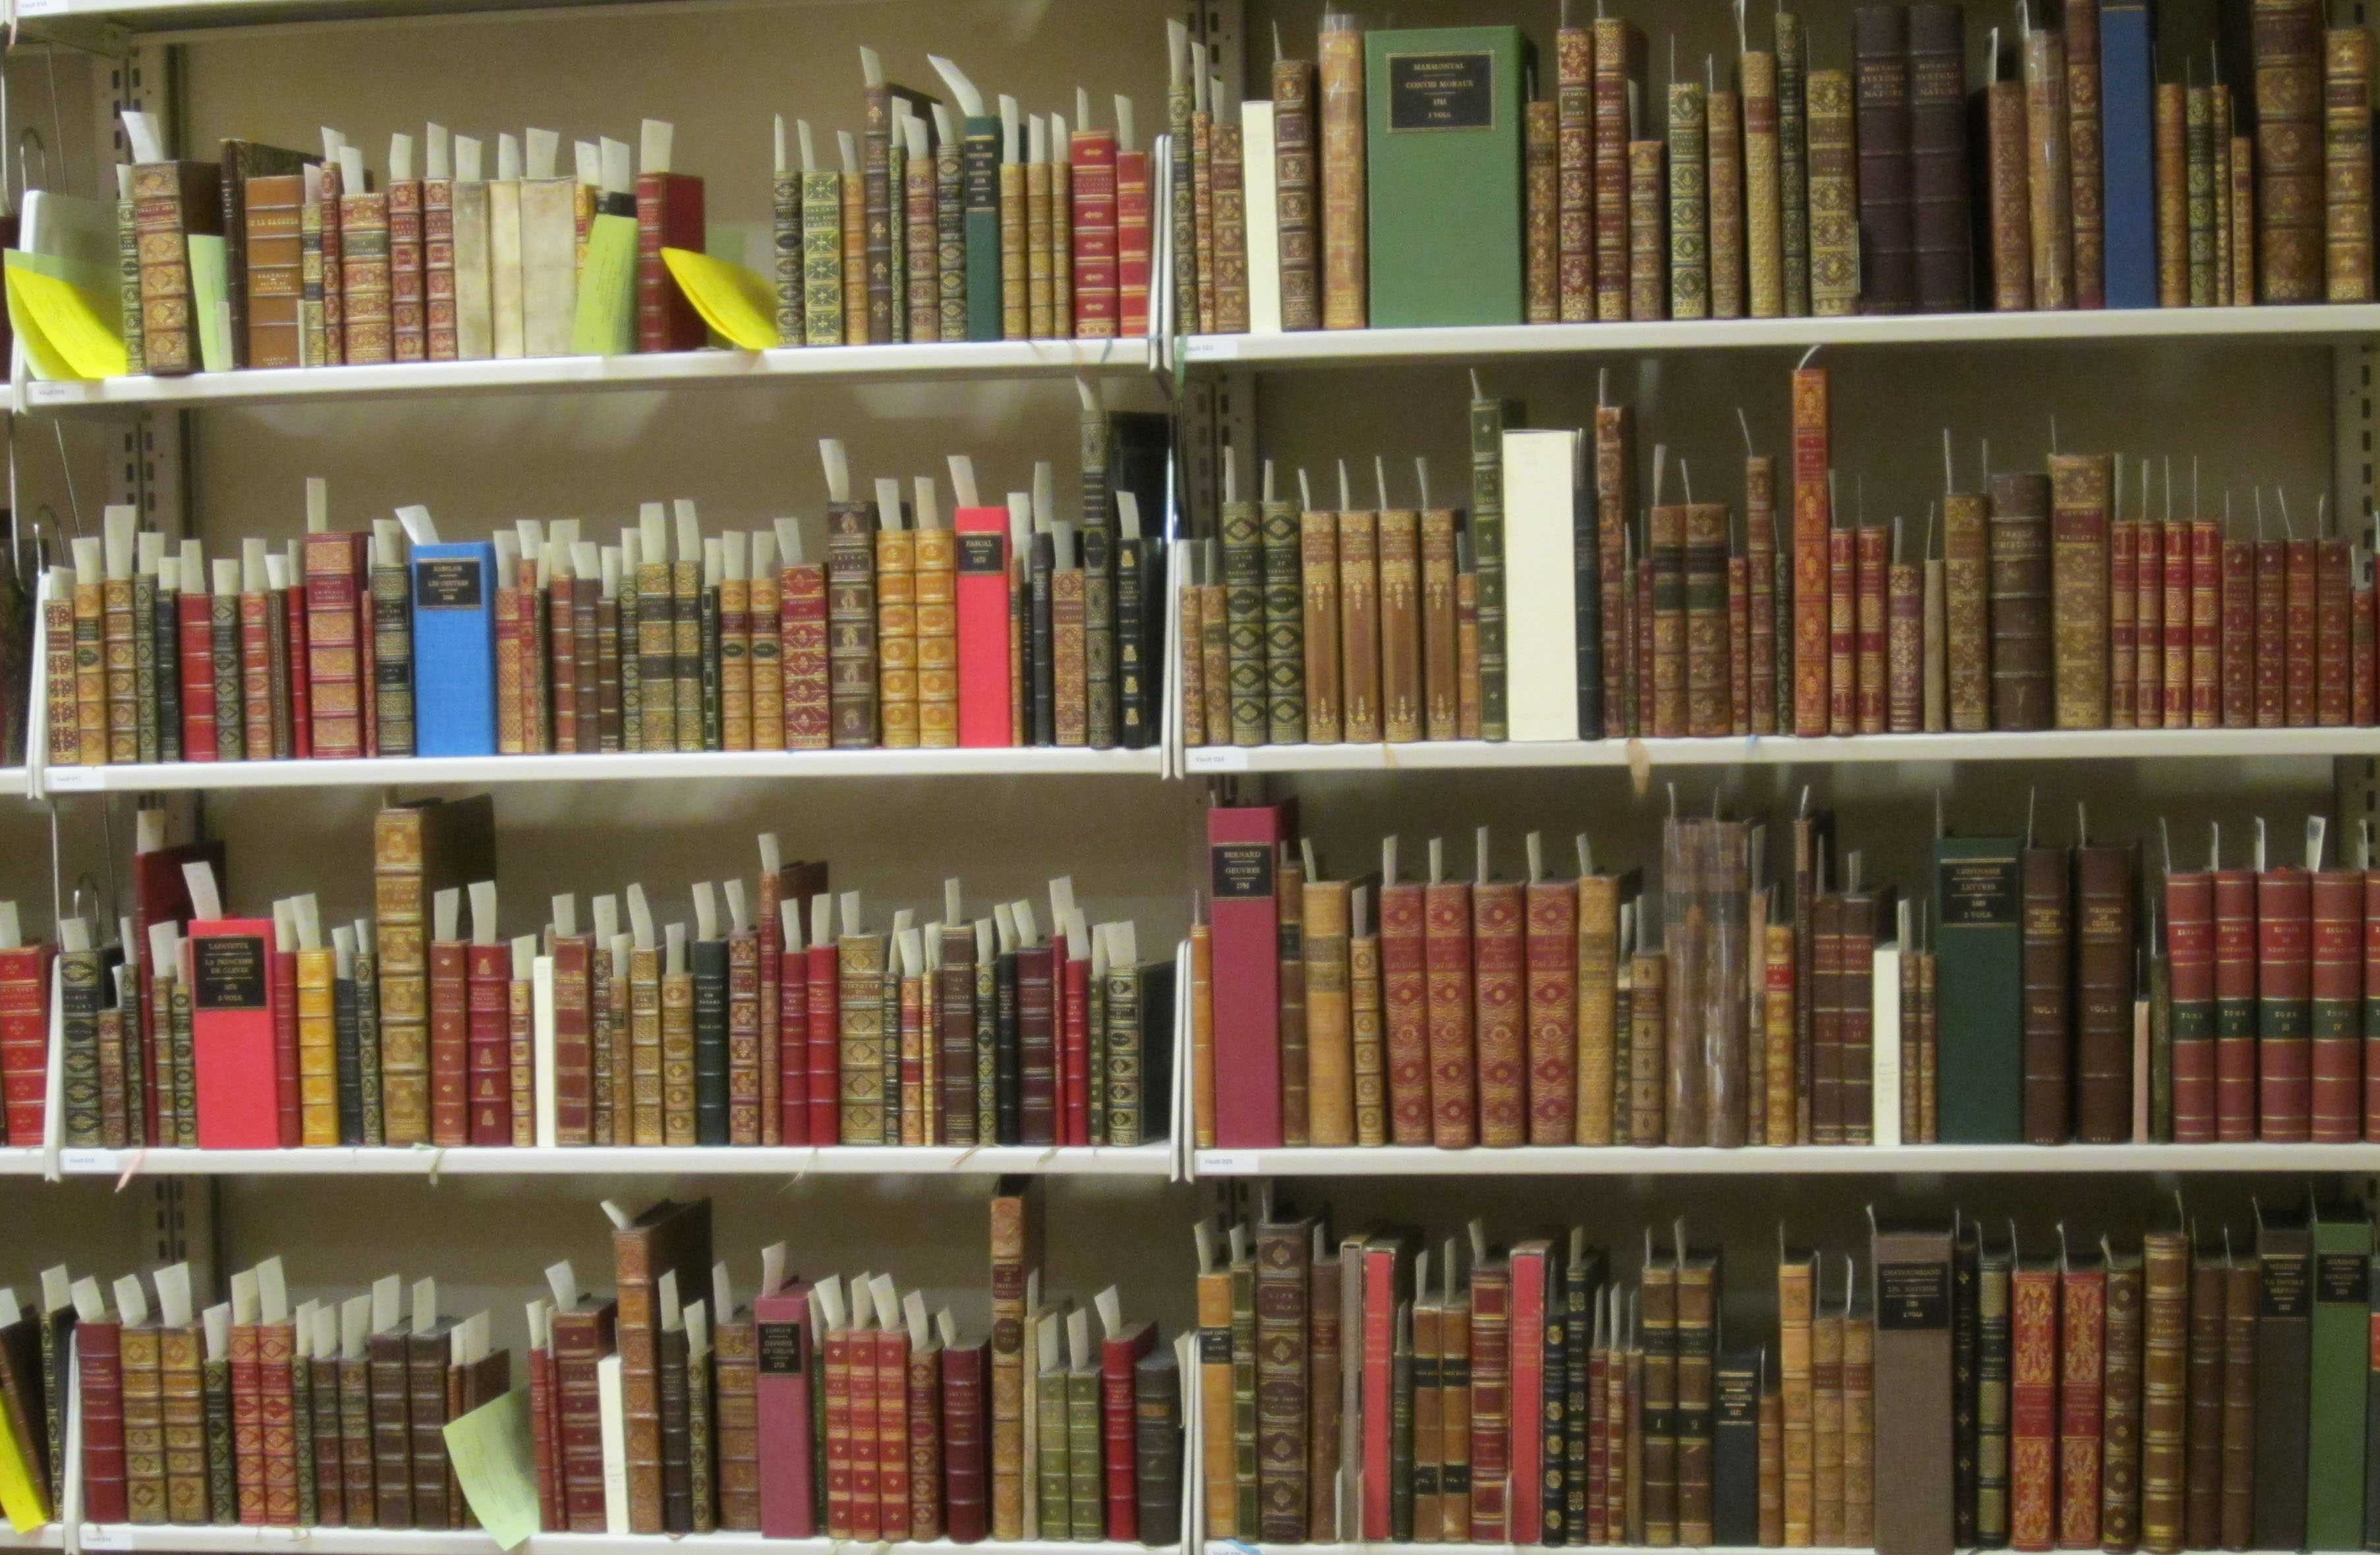 A section of the Gordon Collection of French Books stacks. (Photograph by Petrina Jackson)